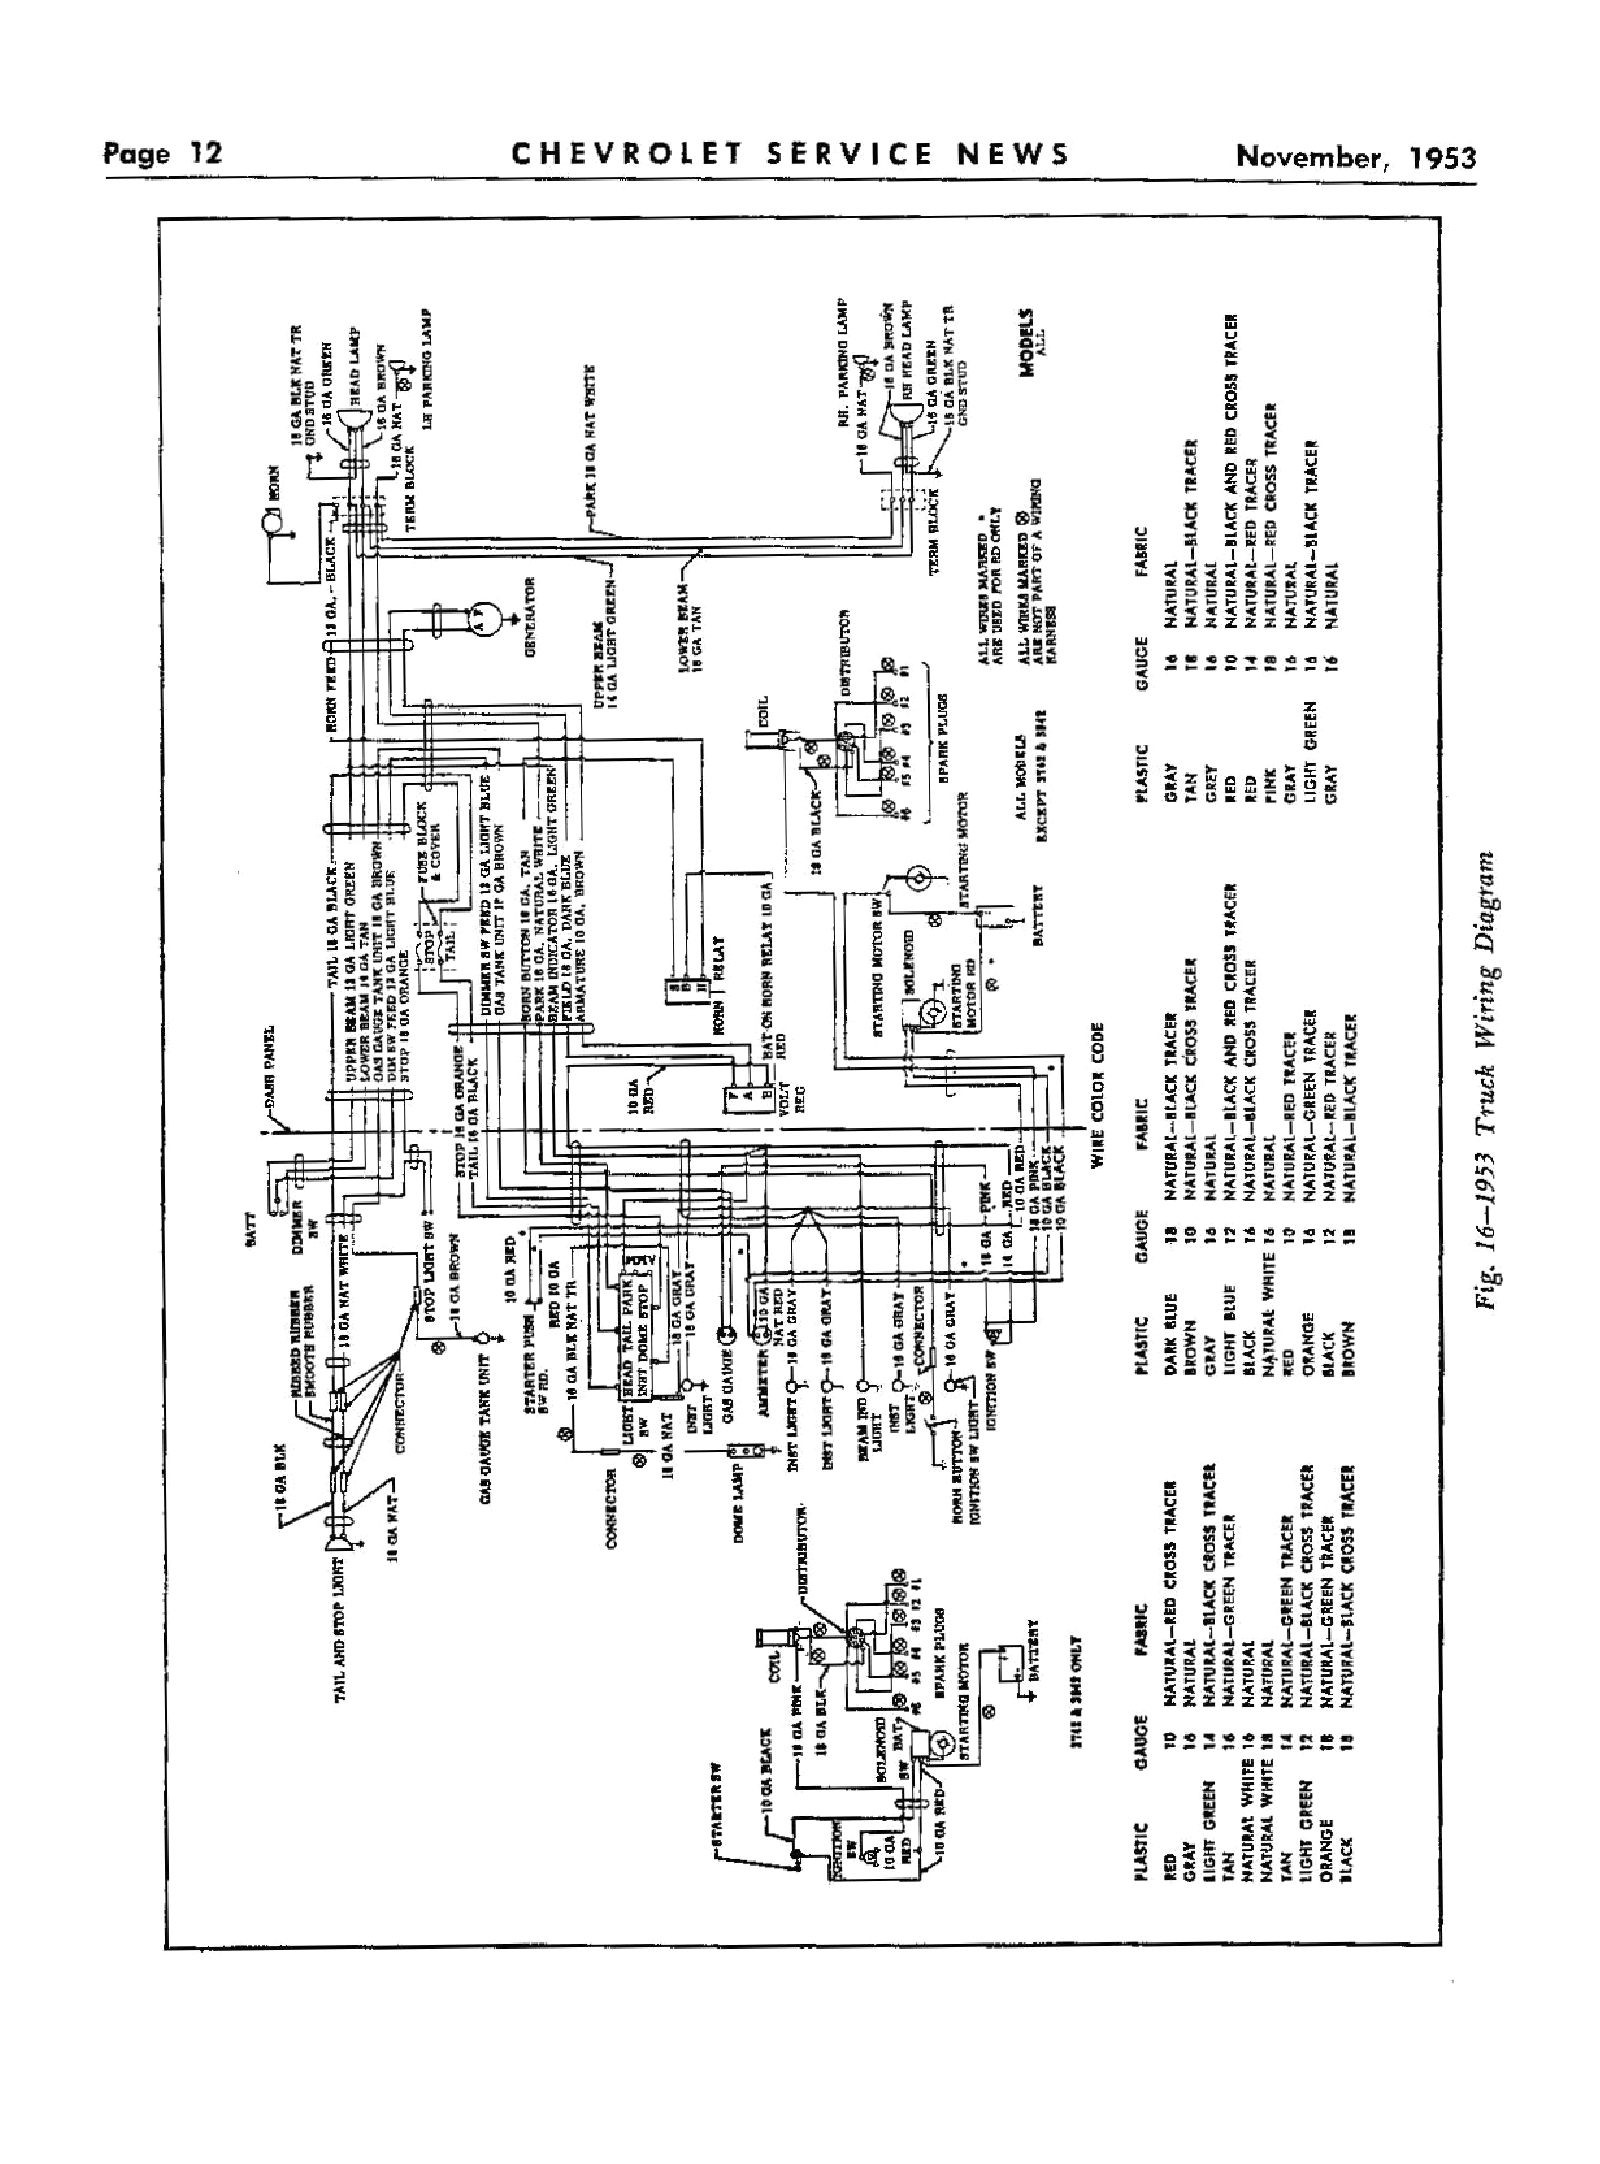 Diagram Pontiac Catalina Wiring Diagram Full Version Hd Quality Wiring Diagram Humaneardiagram Media90 It